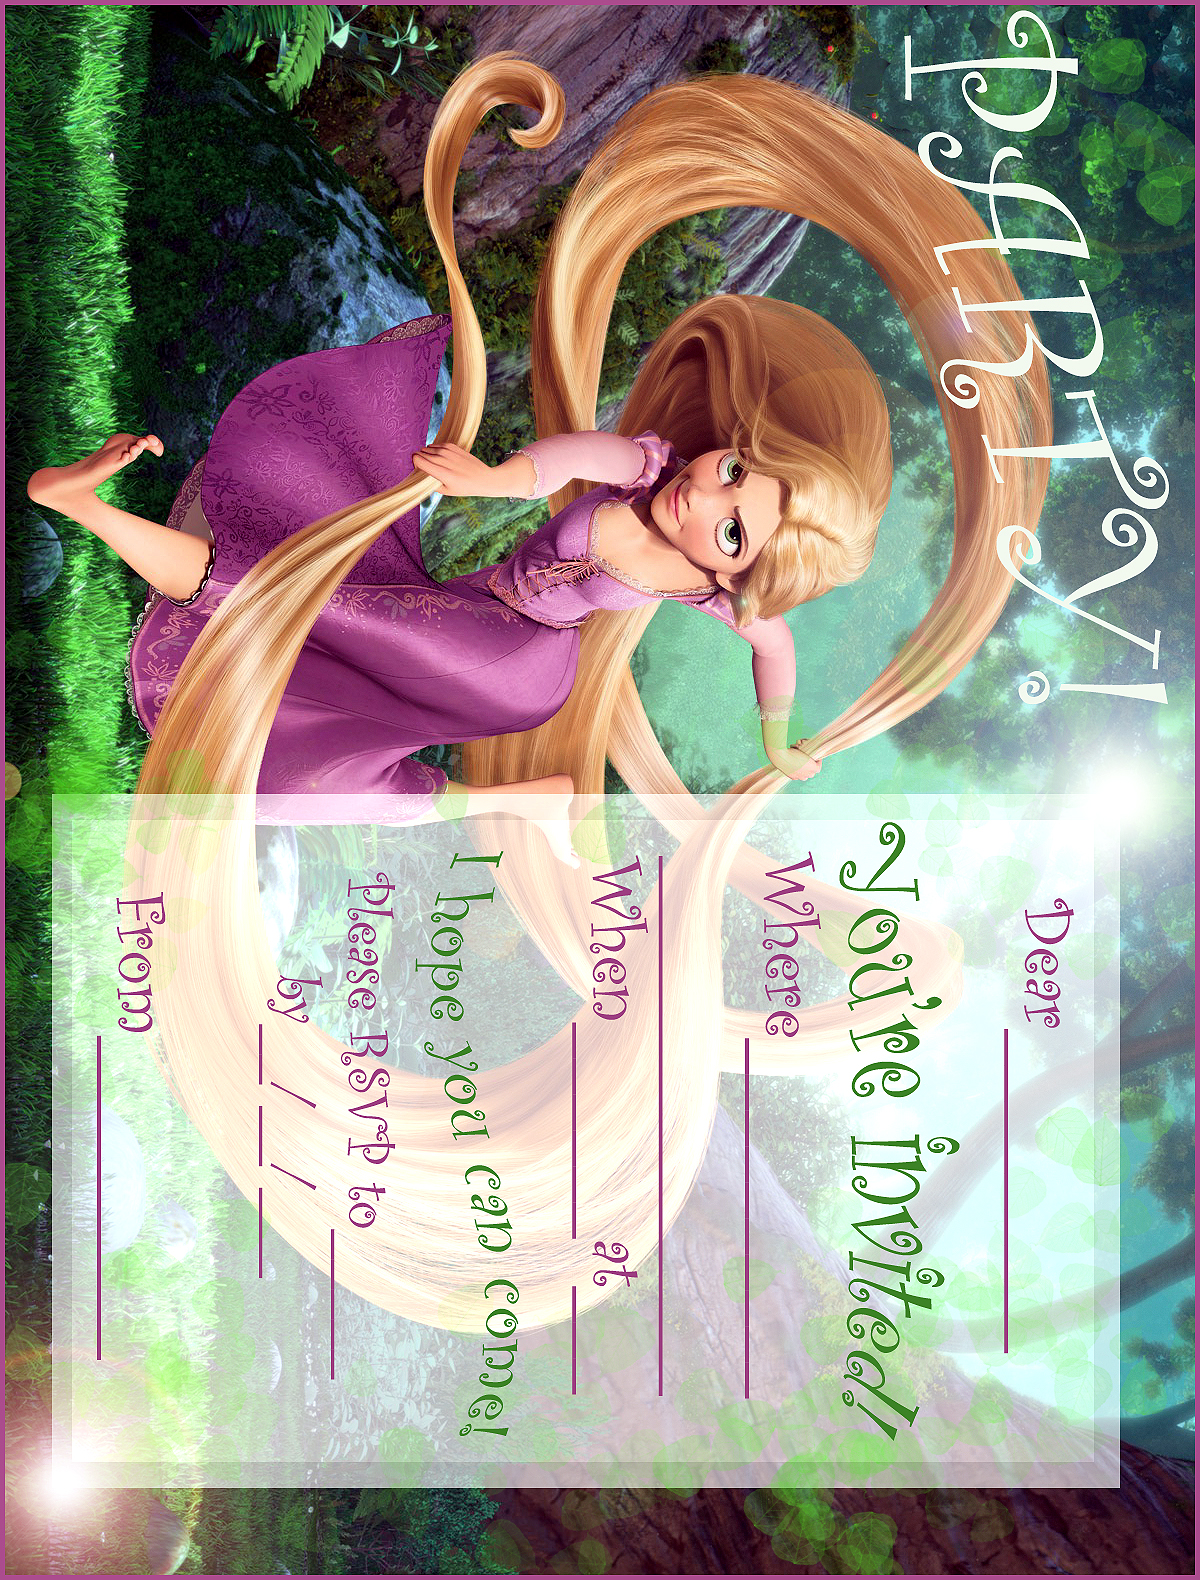 The One Starring Rapunzel Bandit Flynn Ryder Her Pet Chameleon Pascal And Maximus Horse Here Is A Great Free Tangled Birthday Party